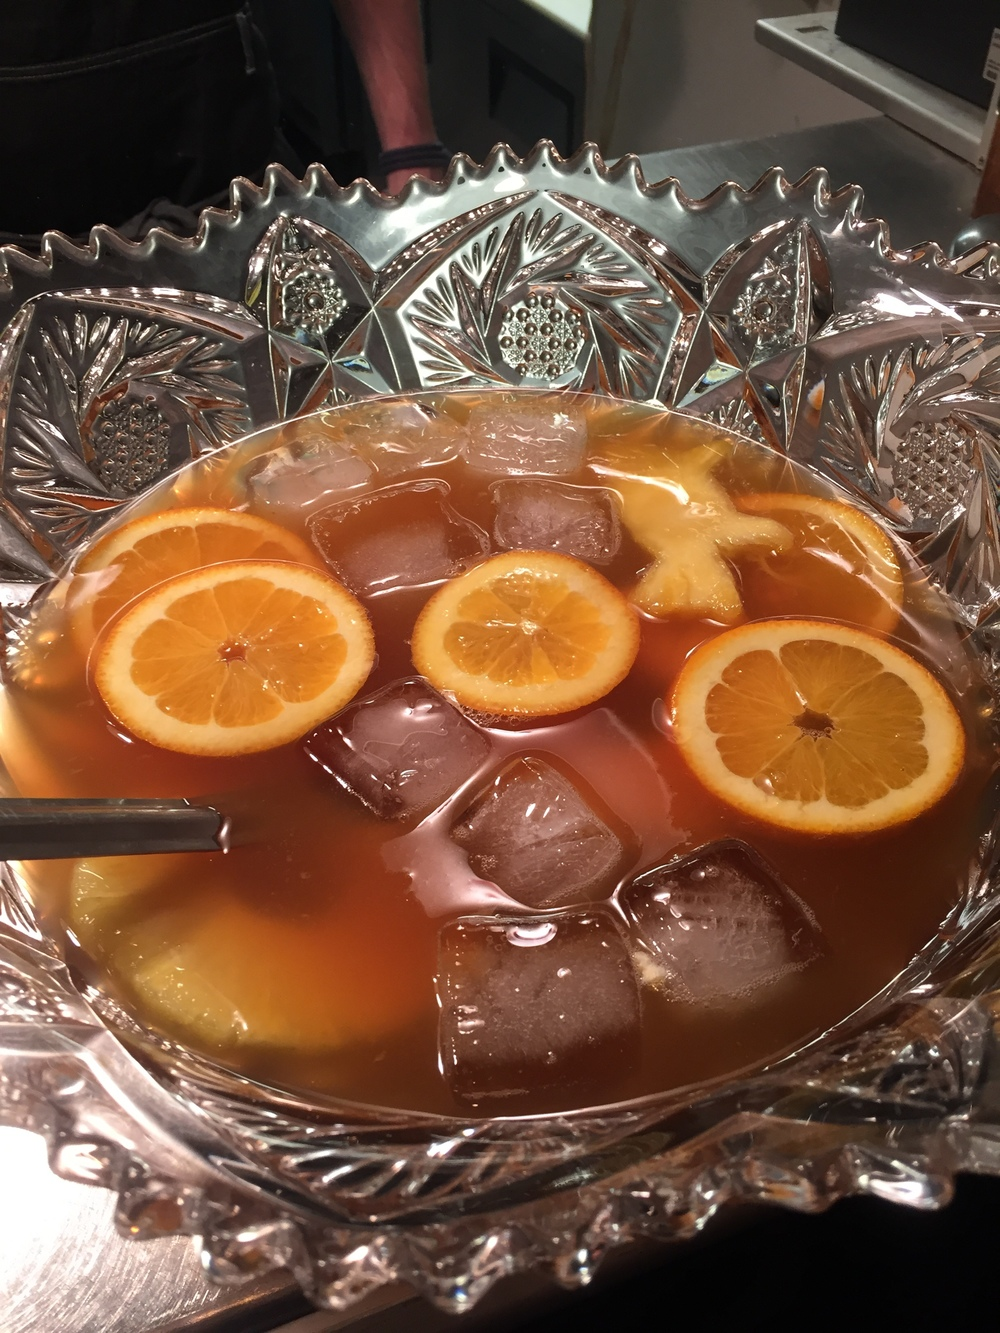 The Rum Punch at Butcher's Bistro